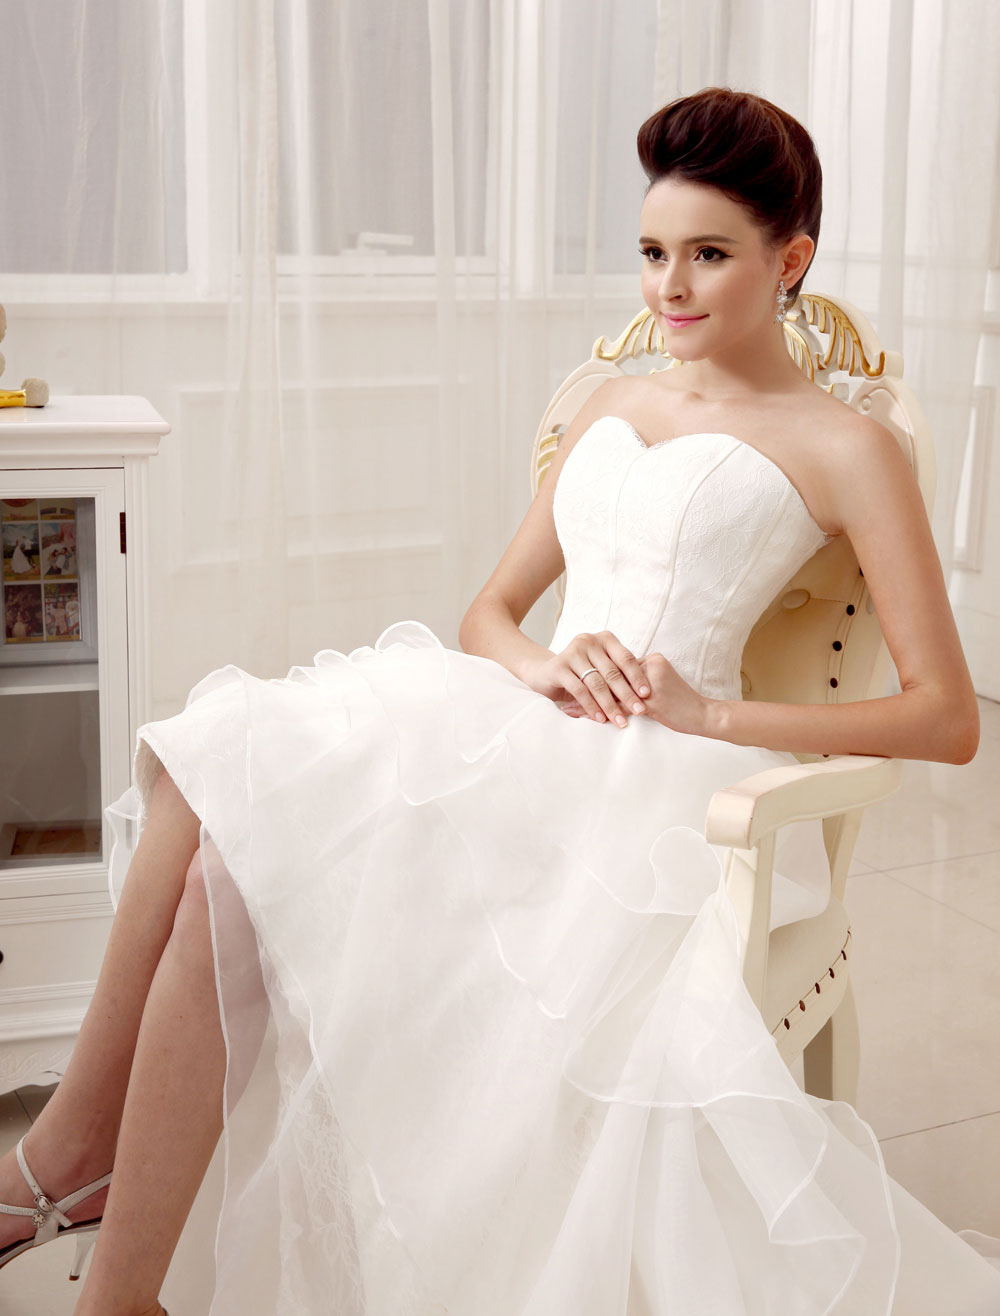 d7247030c4e ... Ivory A-line Sweetheart Neck Strapless Tiered Bridal Wedding Gown-No.5  ...